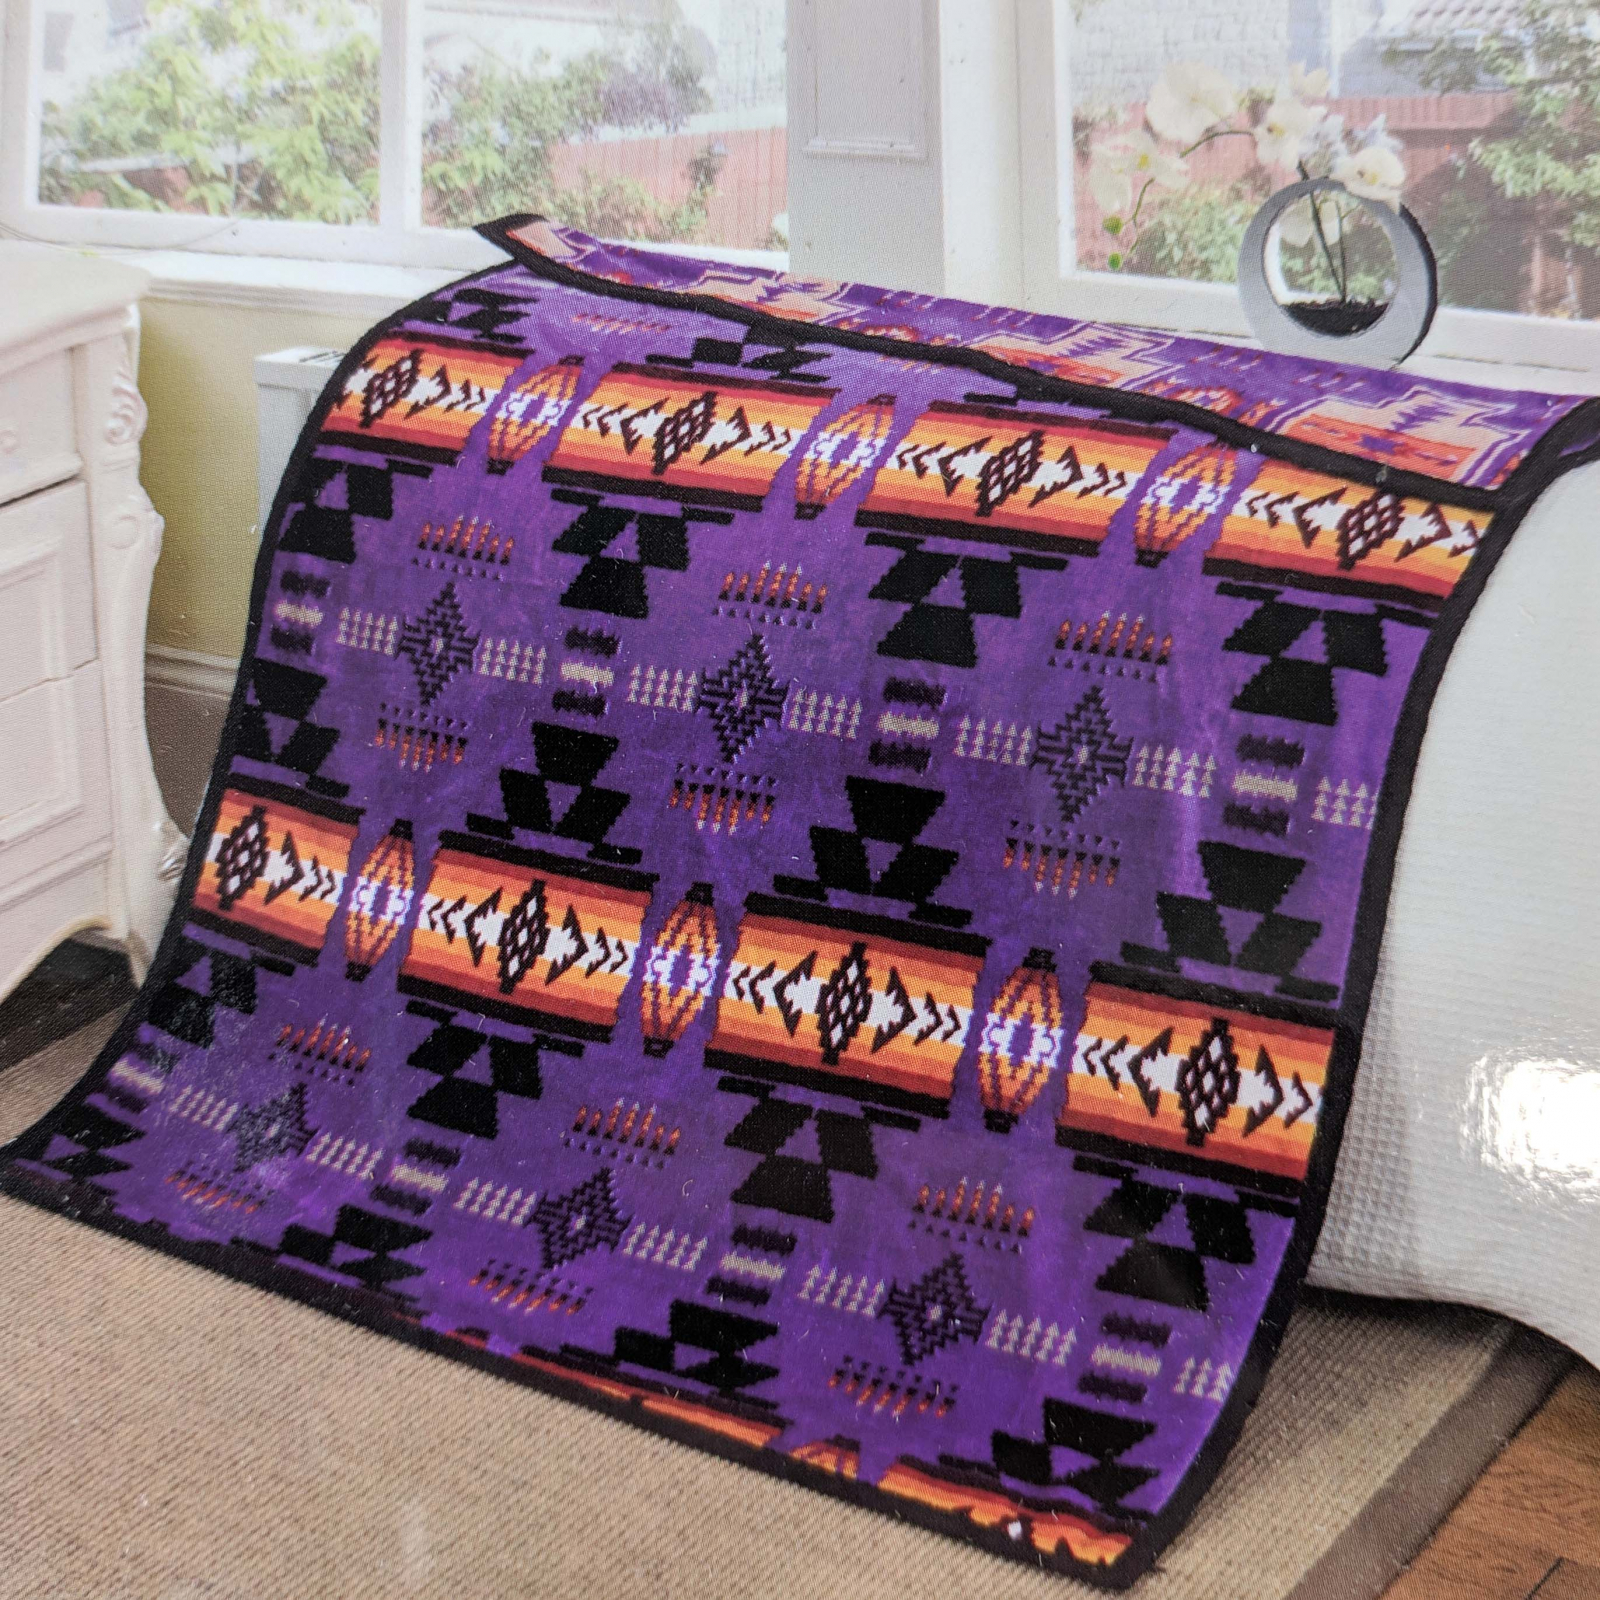 ASR Outdoor Southwest Blanket Reversible Throw - Purple